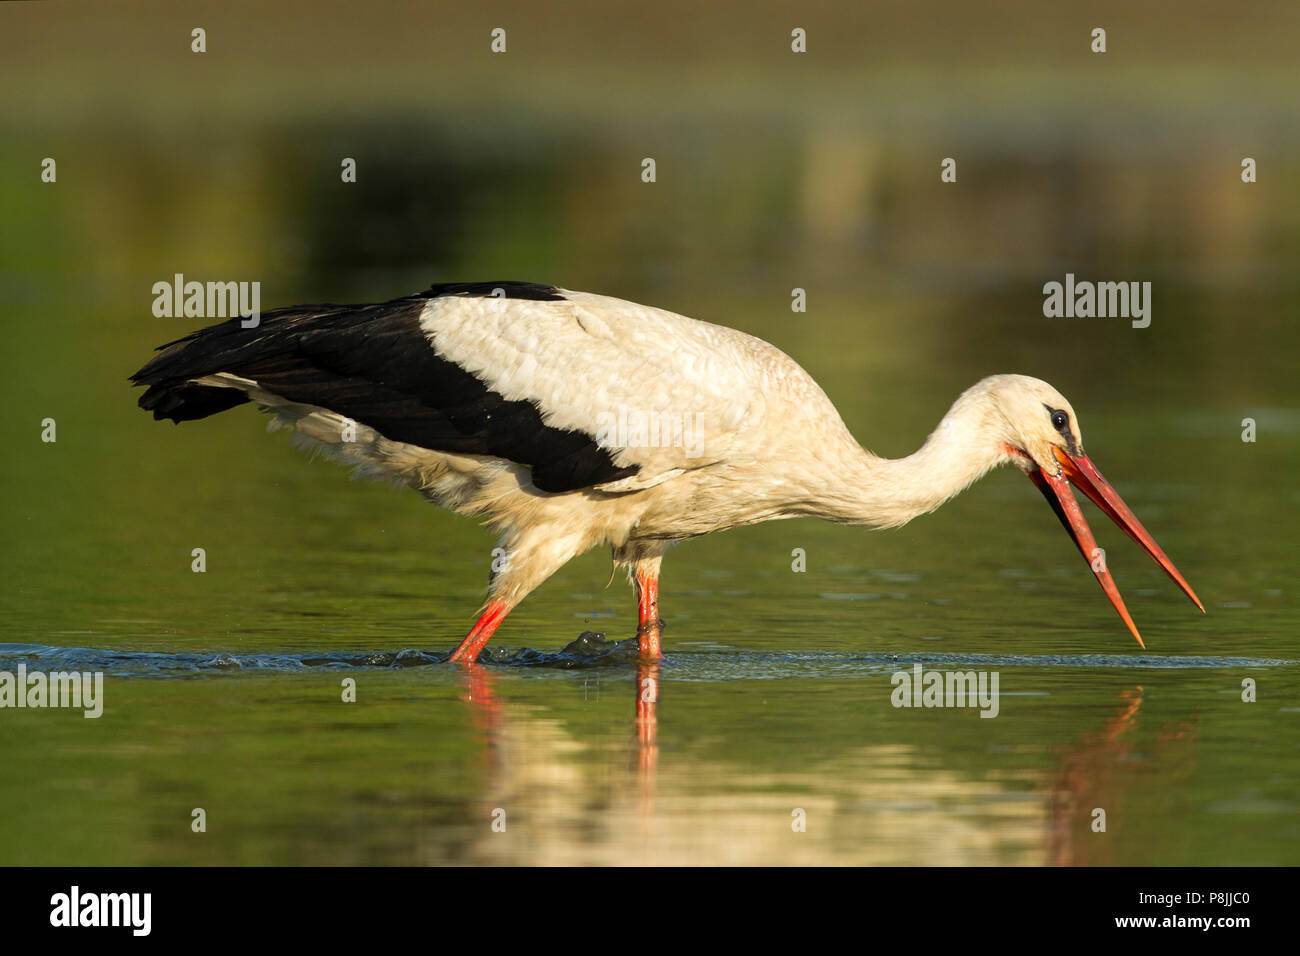 Feeding White Stork in marsh - Stock Image